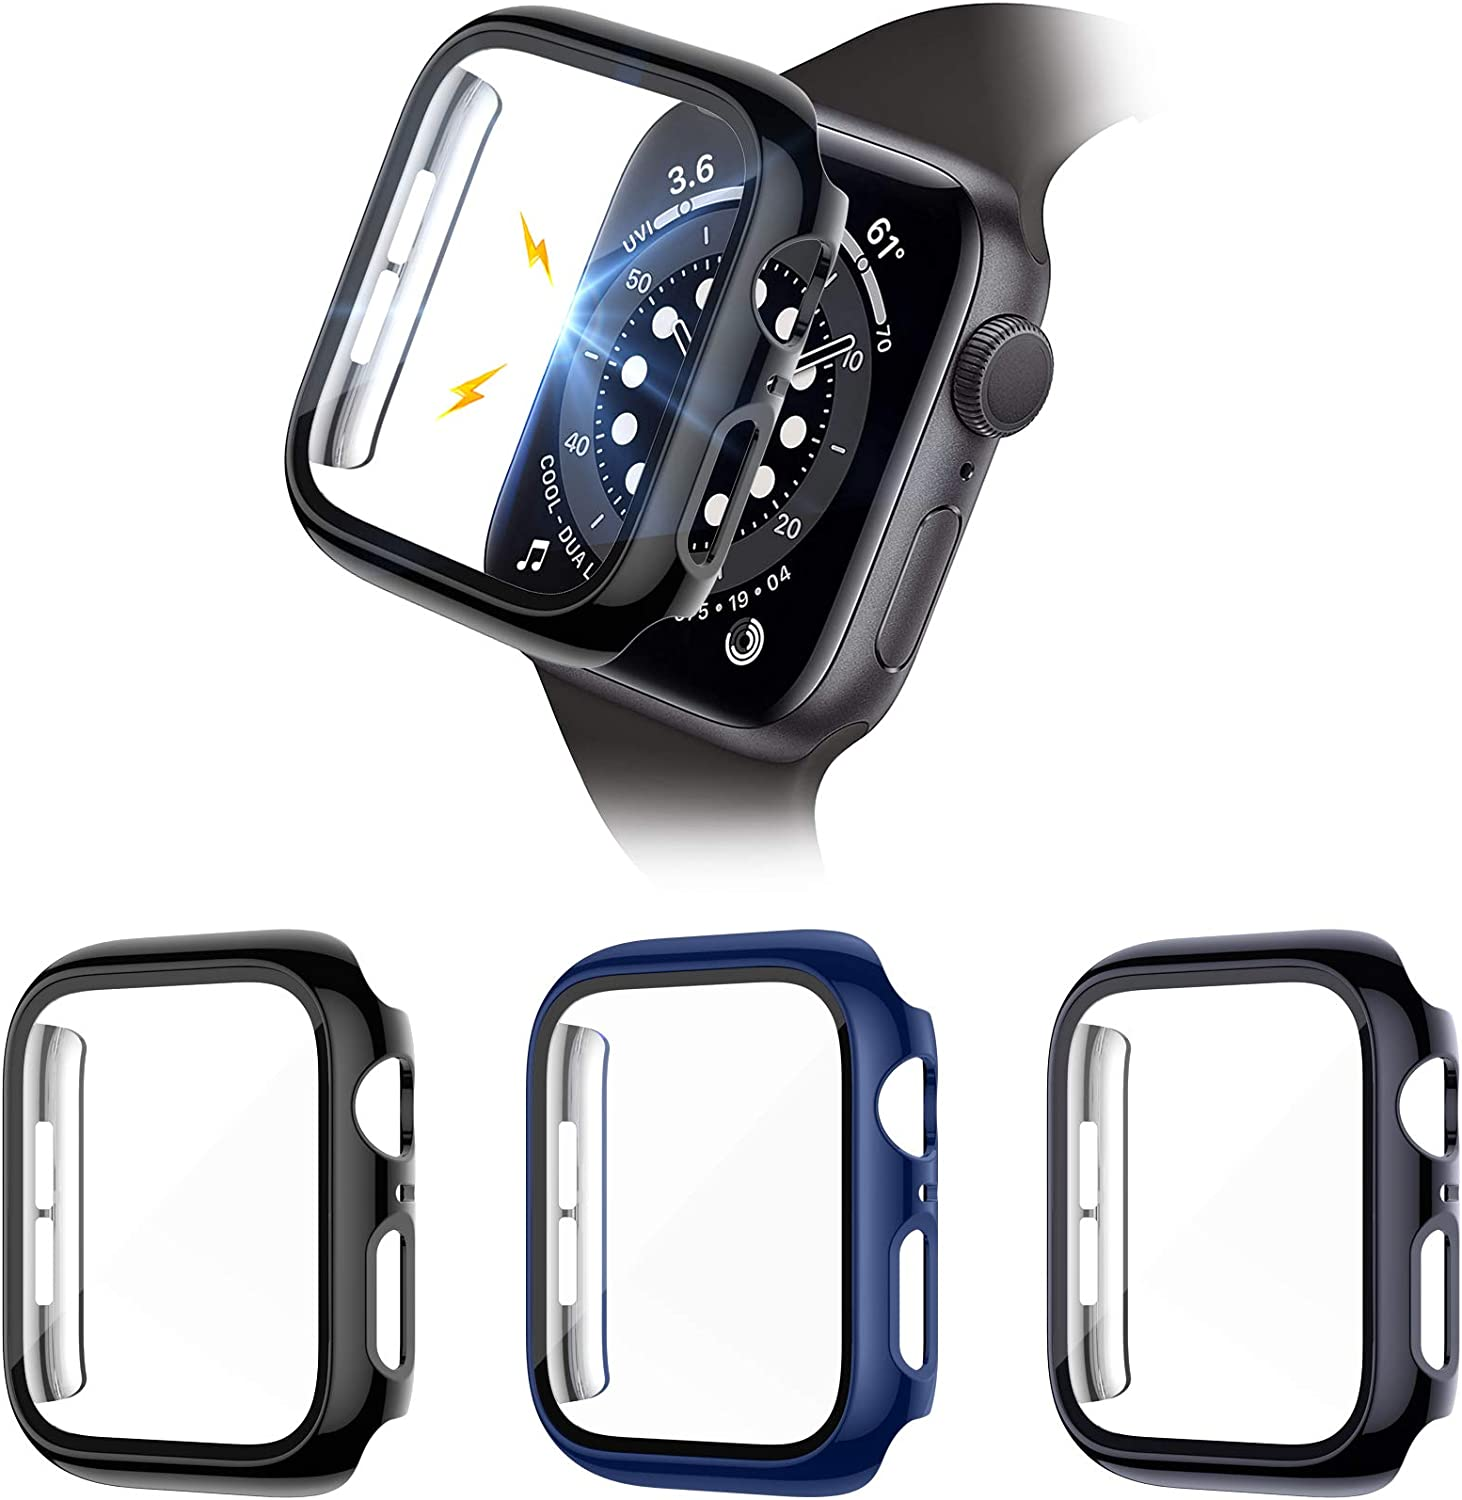 Liwin 3-Pack Tempered Glass Screen Protector Cases Compatible with Apple Watch SE/Series 6/5/4 44mm, HD Hard PC Protective Cover Compatible with iWatch Series SE/6/5/4 (Black/Midnight Blue/Charcoal)